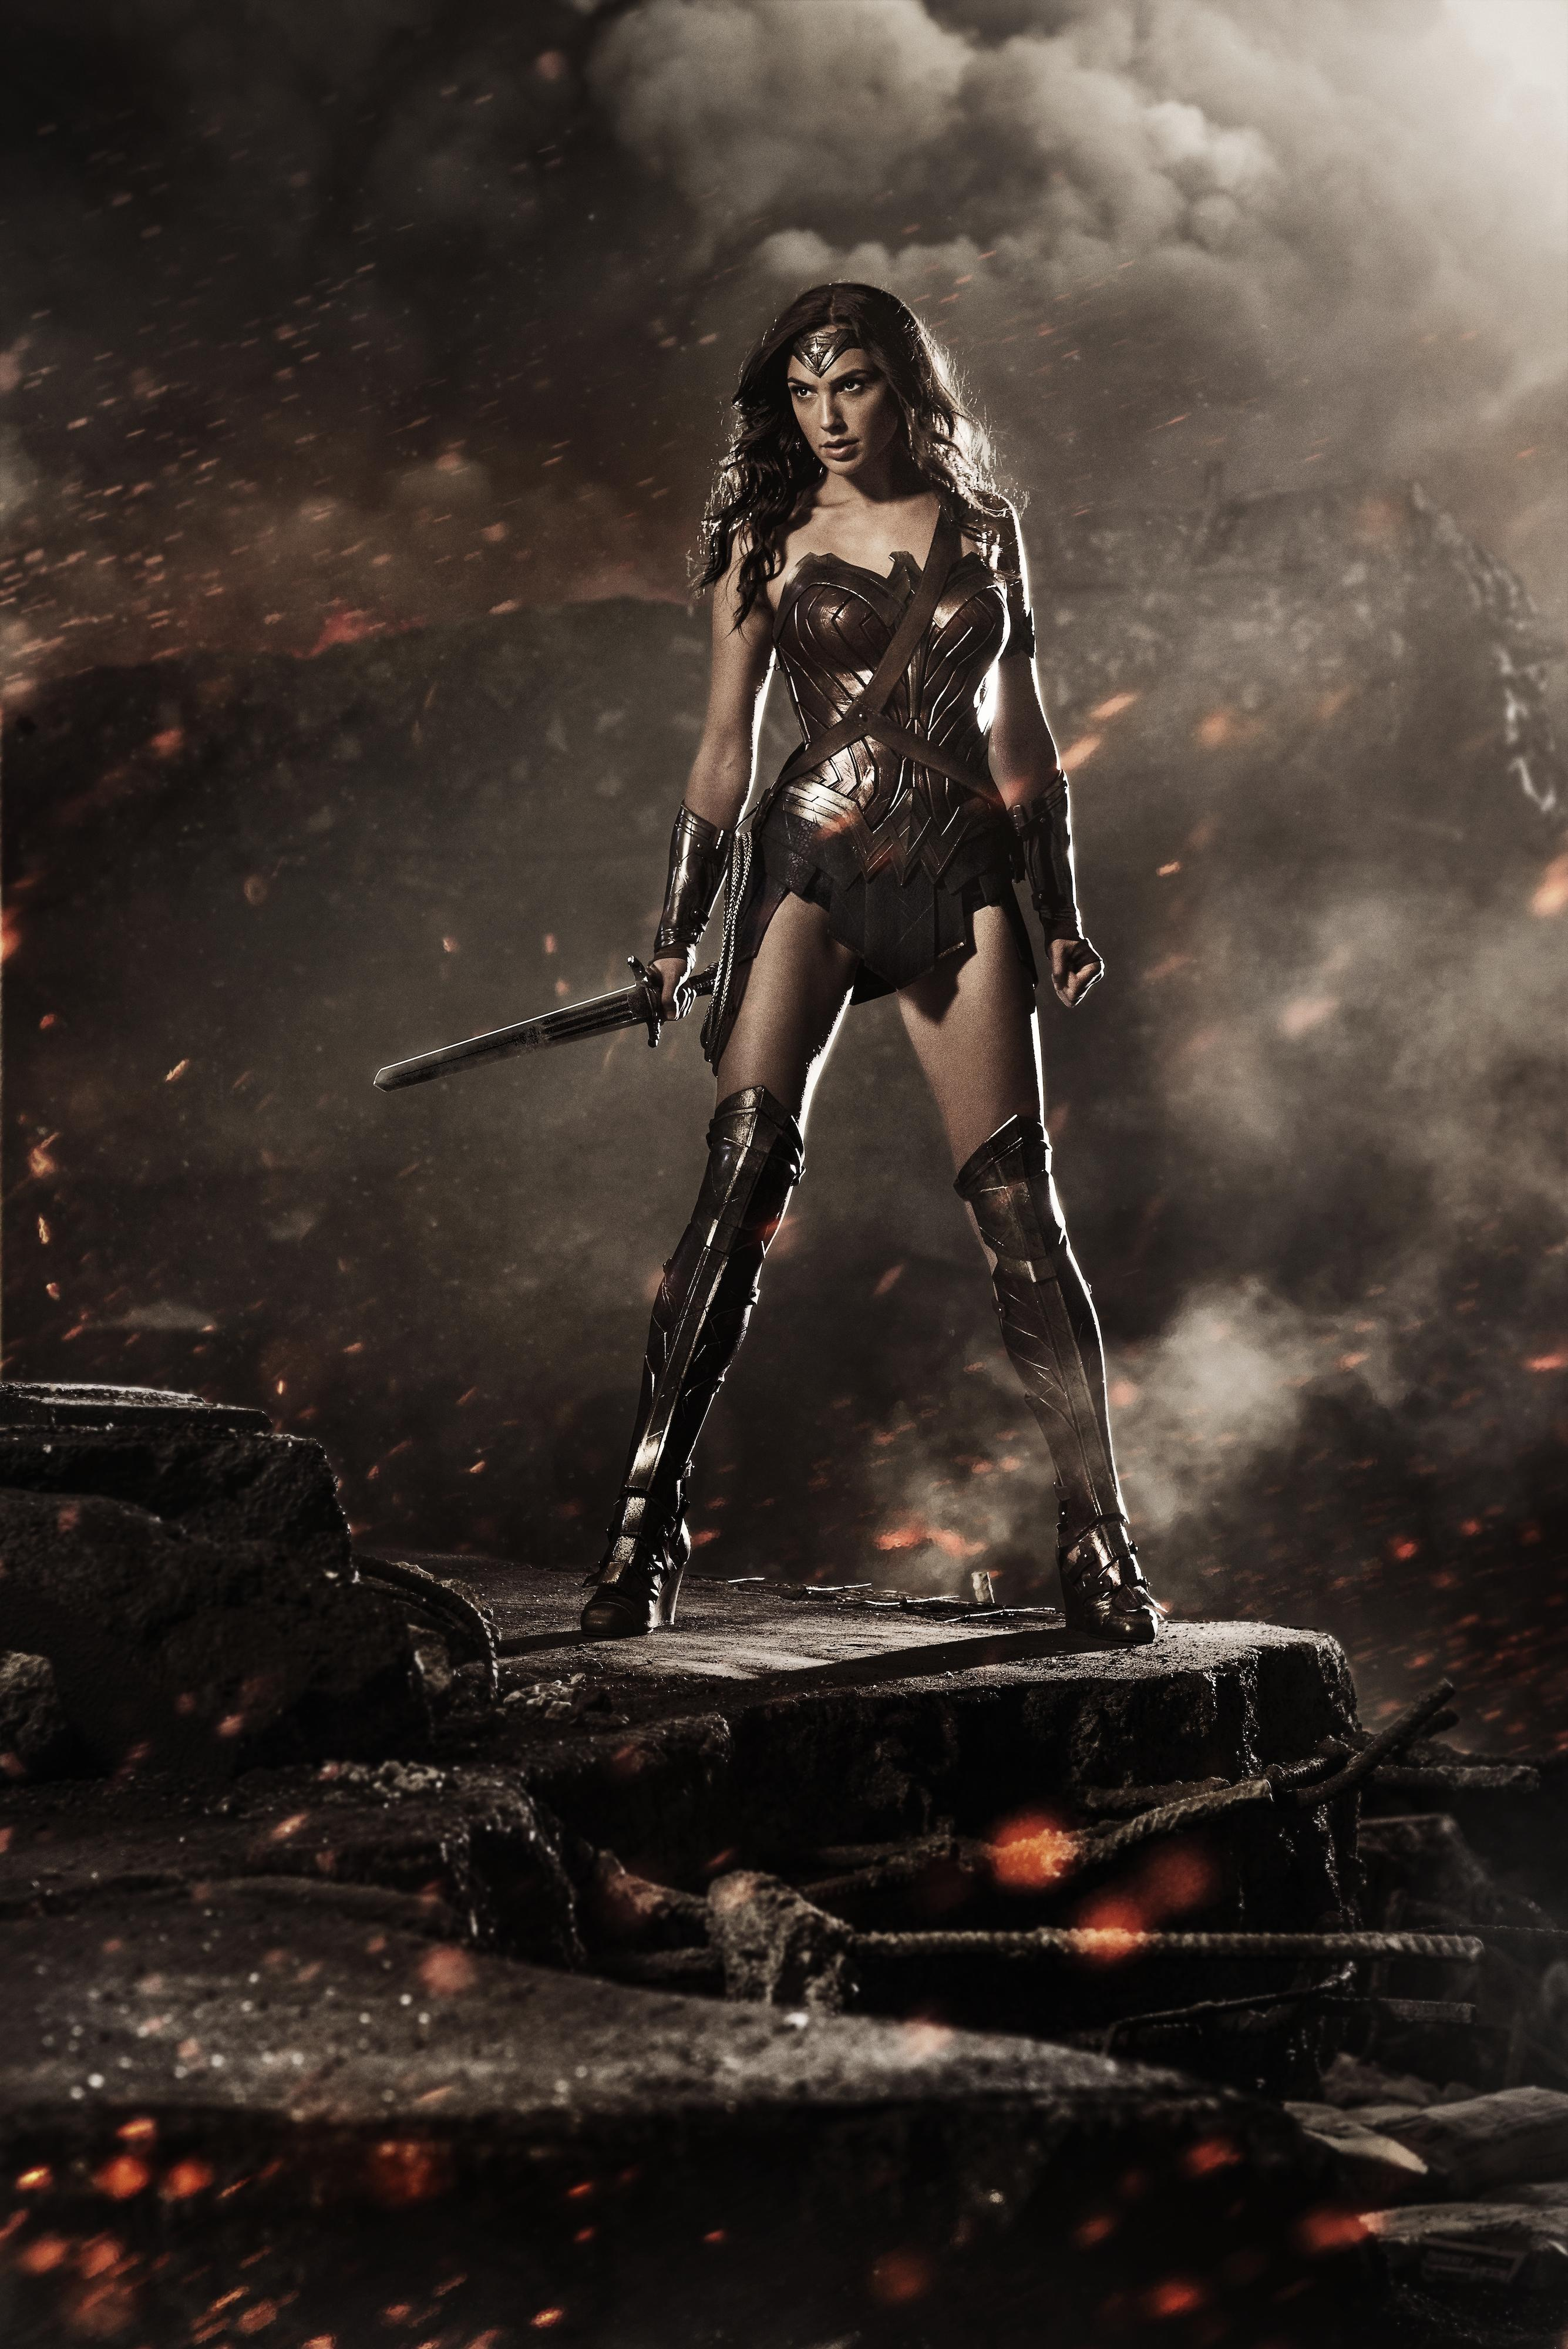 Gal Gadot as Wonder Woman photo revealed at Comic-